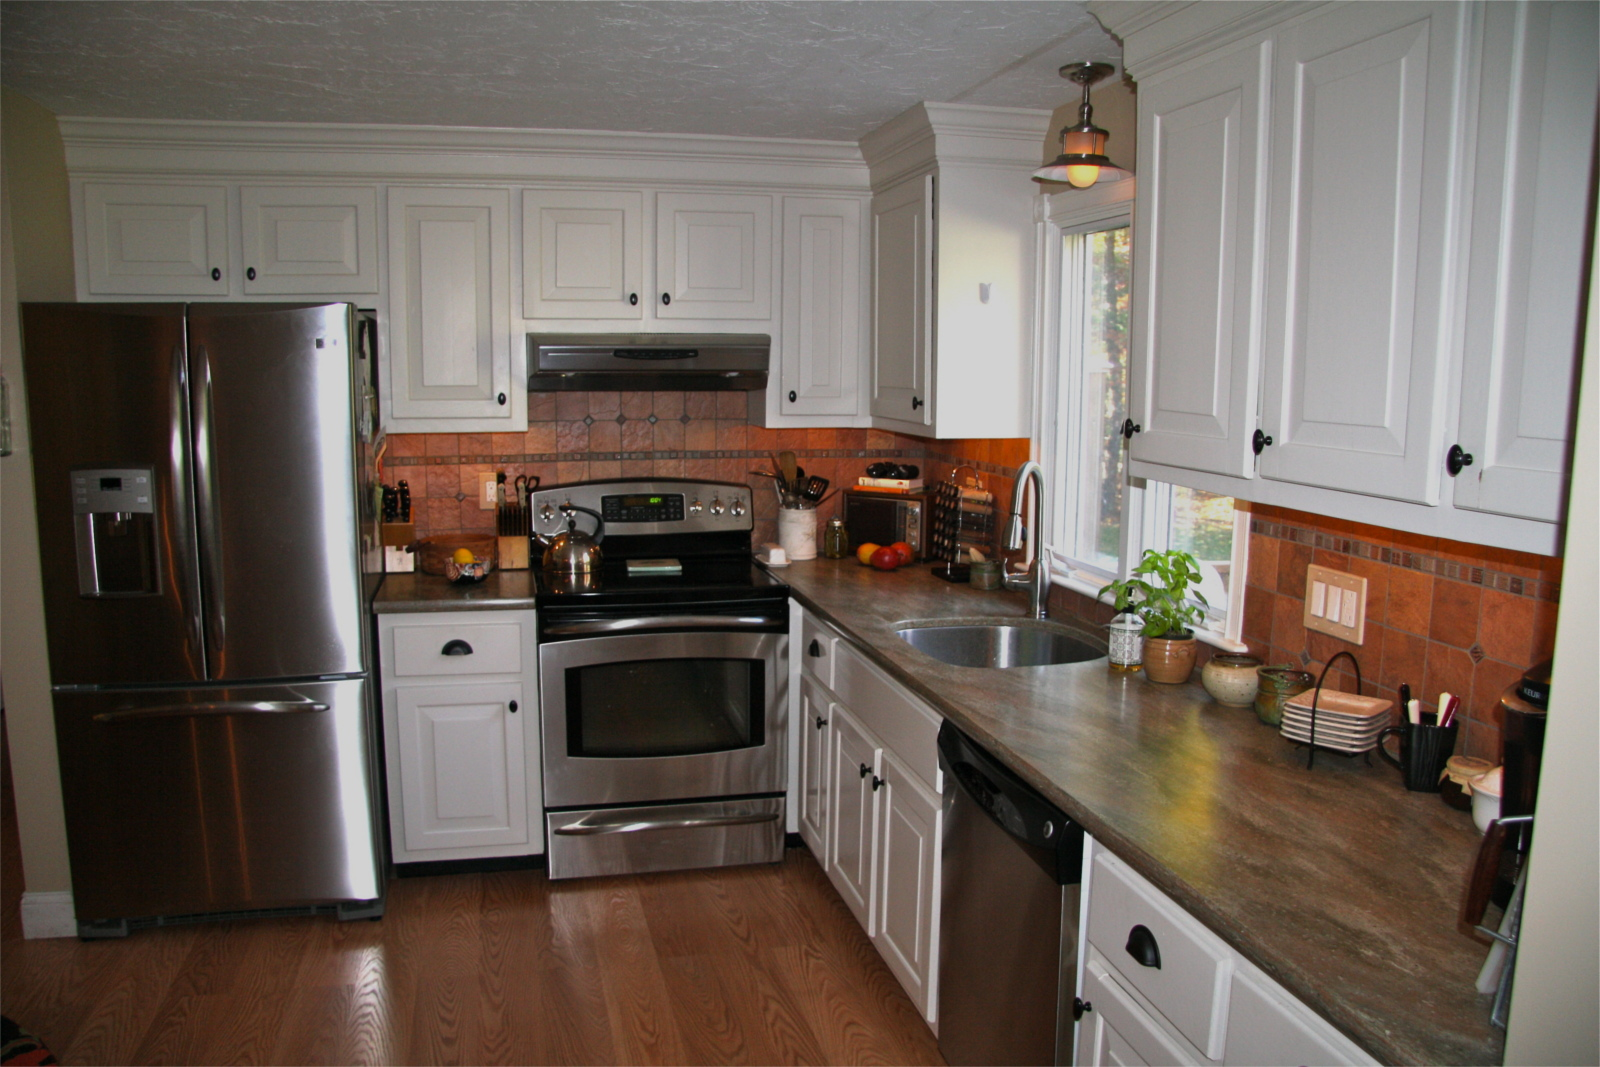 Kitchen remodeled by Handyman Hotline guys